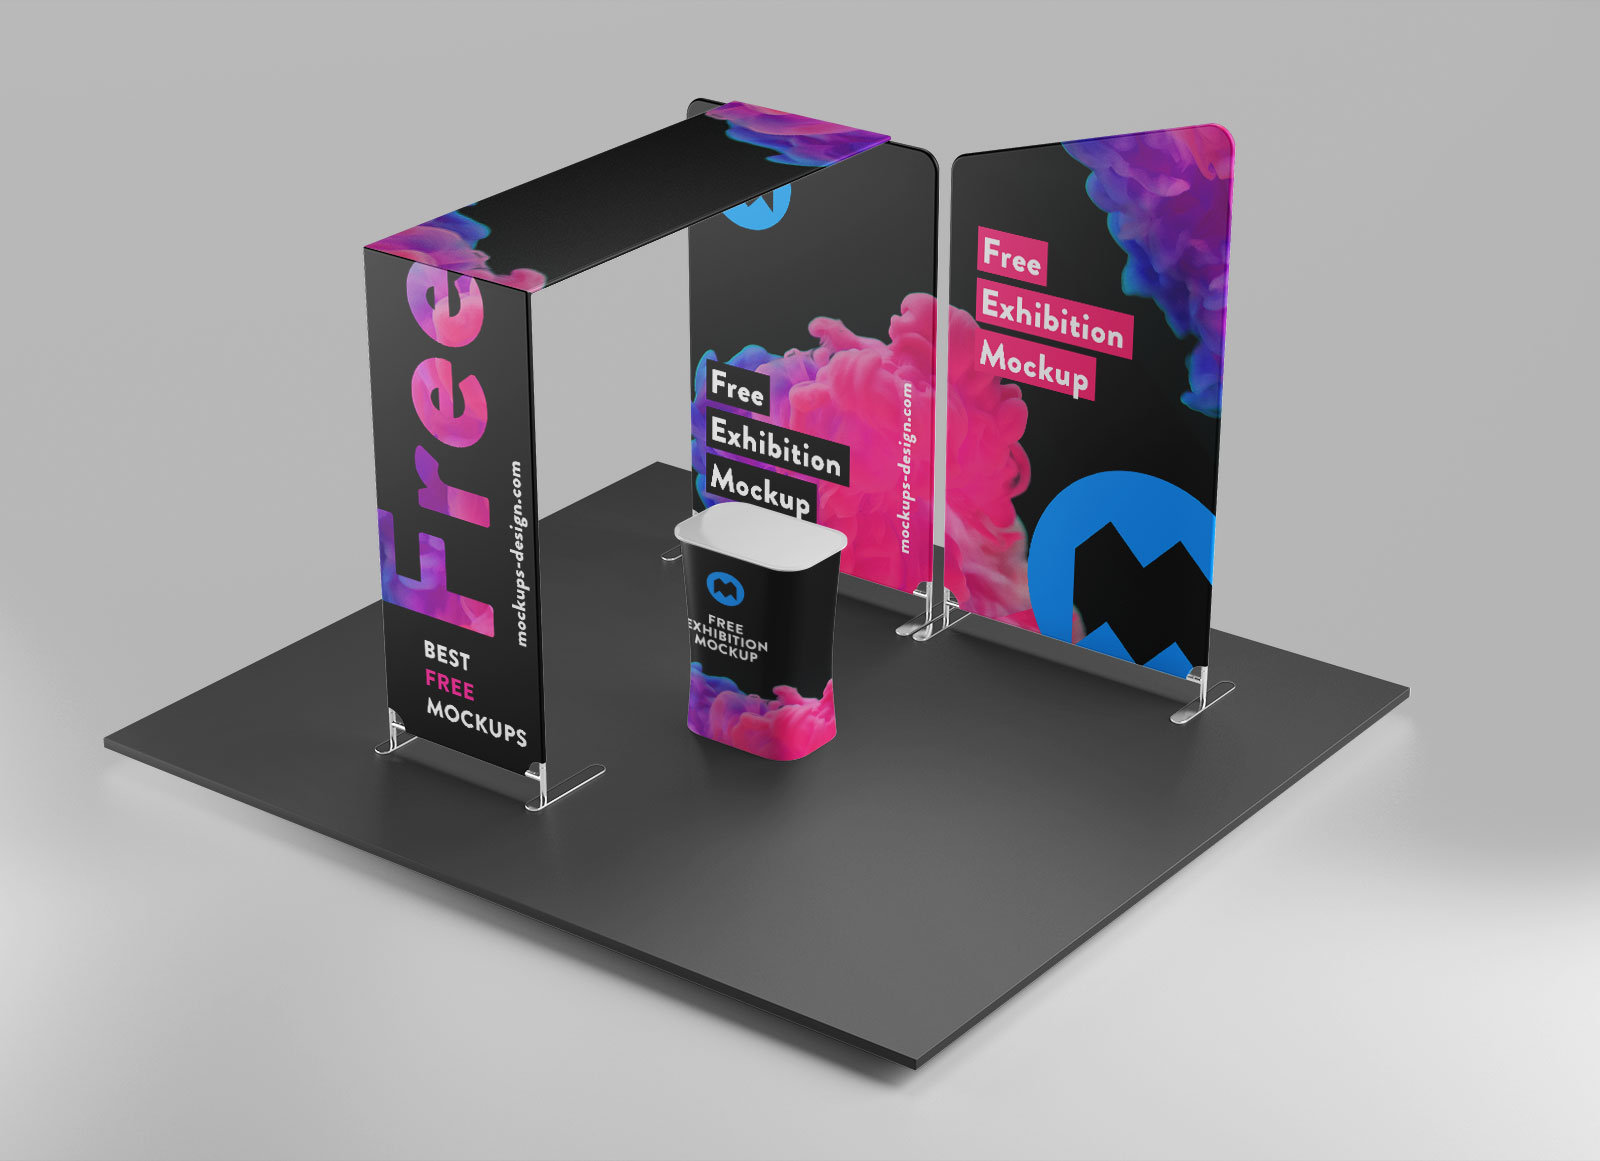 Exhibition Booth Mockup Psd : Free trade show exhibition display booth stand mockup psd